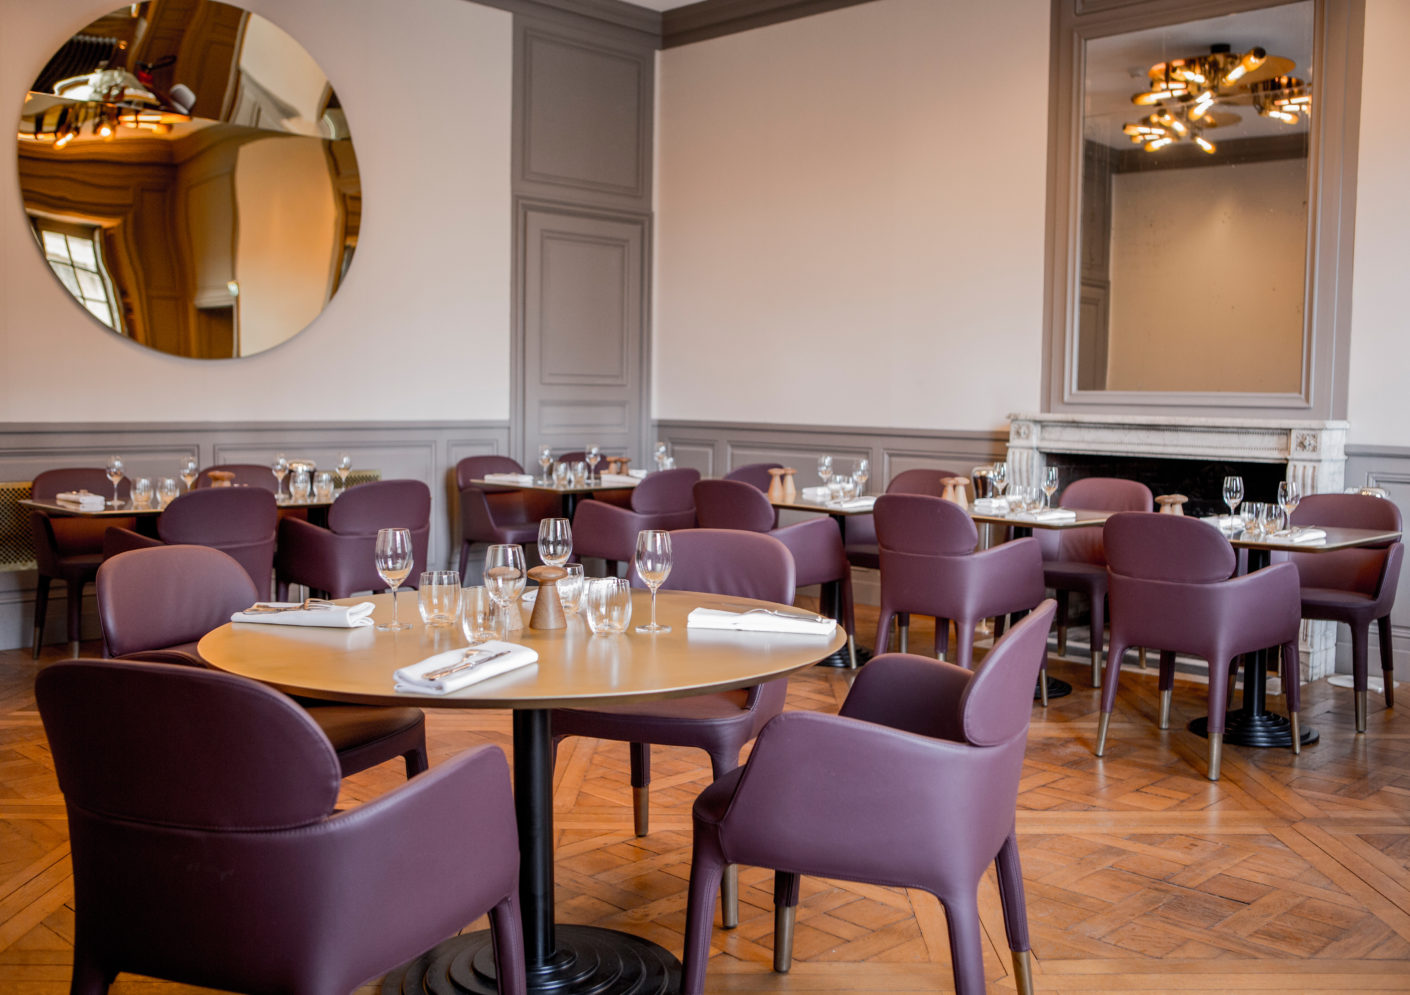 In dark purple and beige, the chairs harmonize with the gold used in the former royal residence and which recurs on the surfaces of the tables and the window shutters.